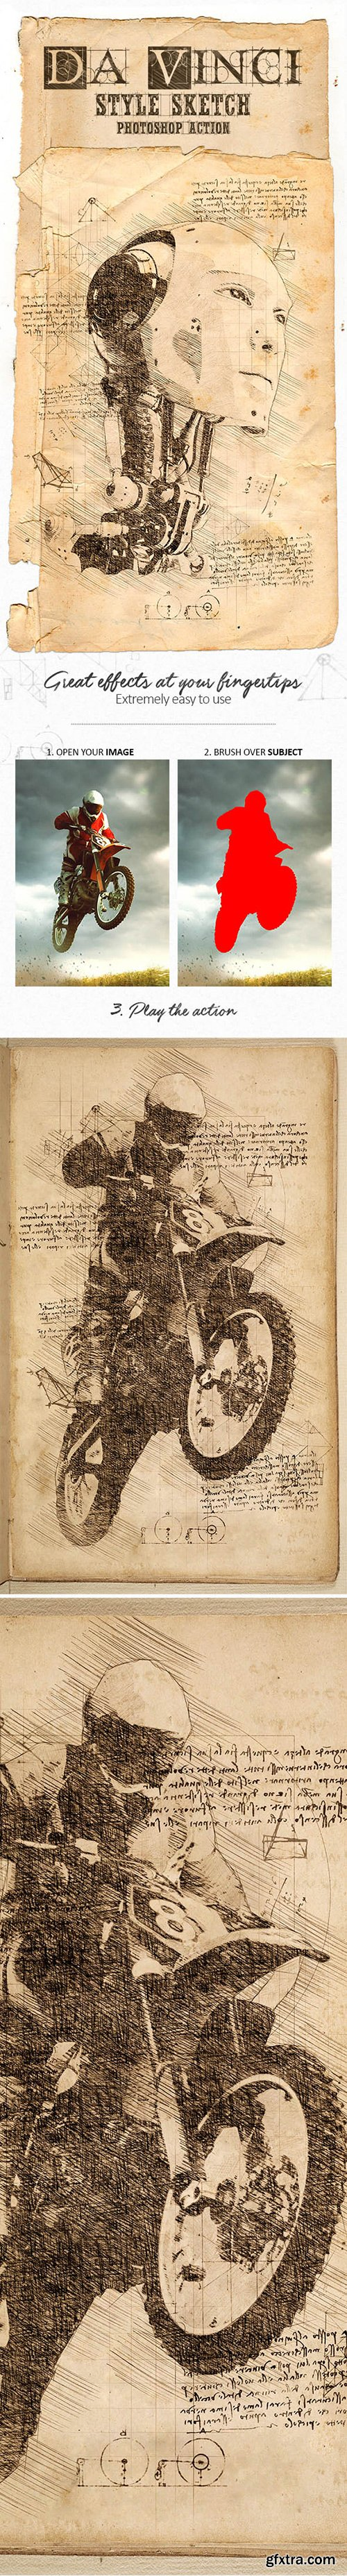 Graphicriver - Da Vinci Style Sketch Photoshop Action 18846644